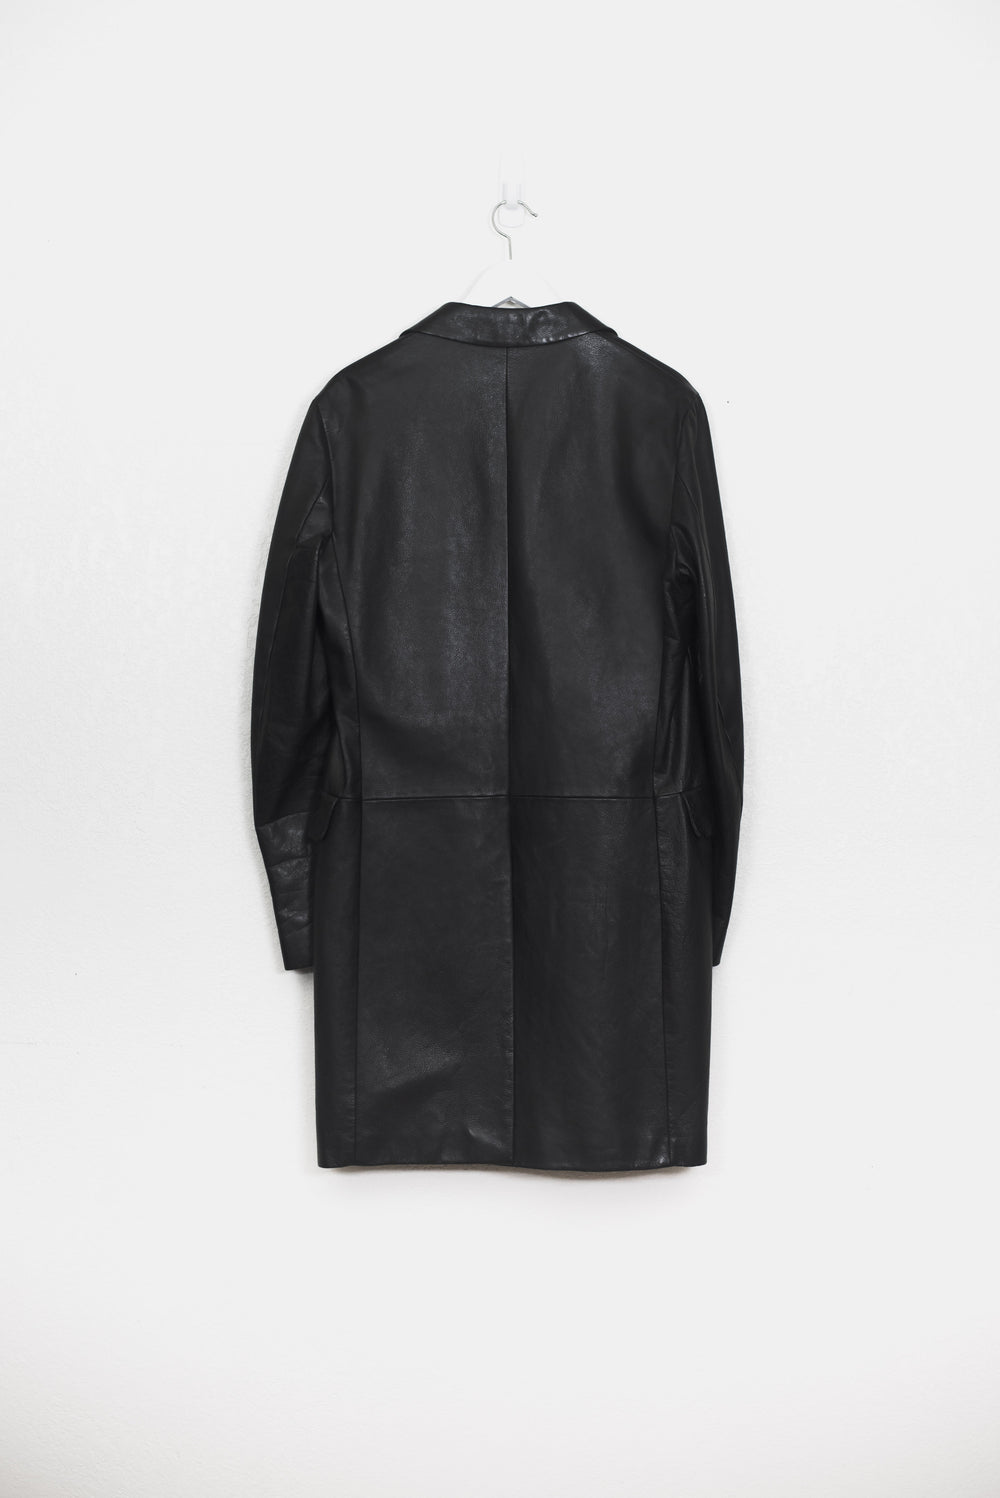 Helmut Lang 00s Leather Chesterfield